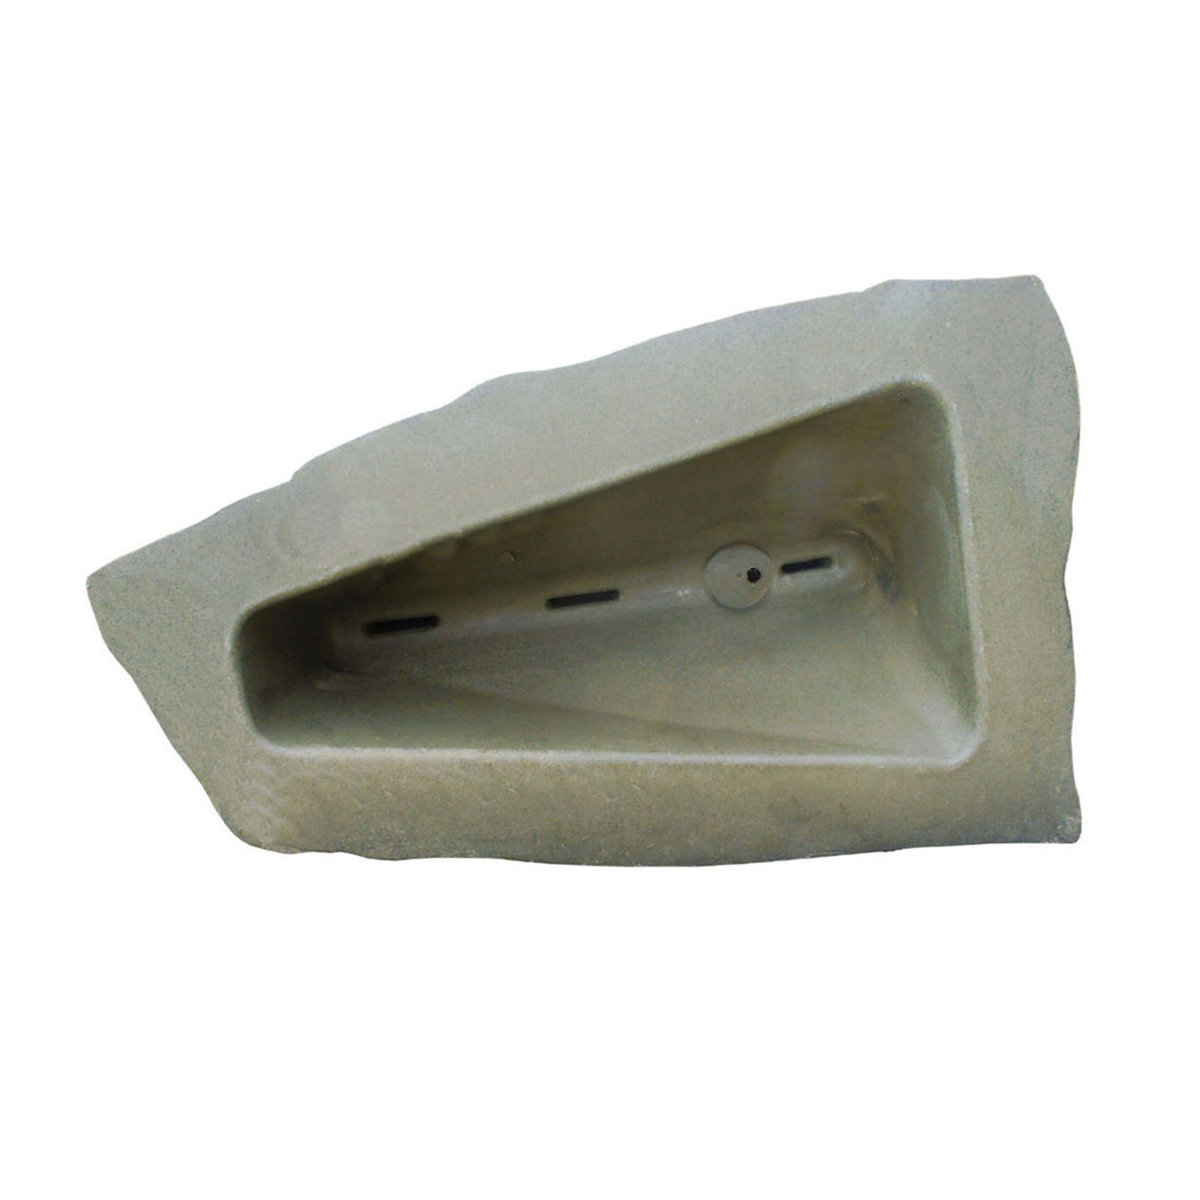 Rts Home Accents Left Triangle Landscaping Rock Oak Armor Stone